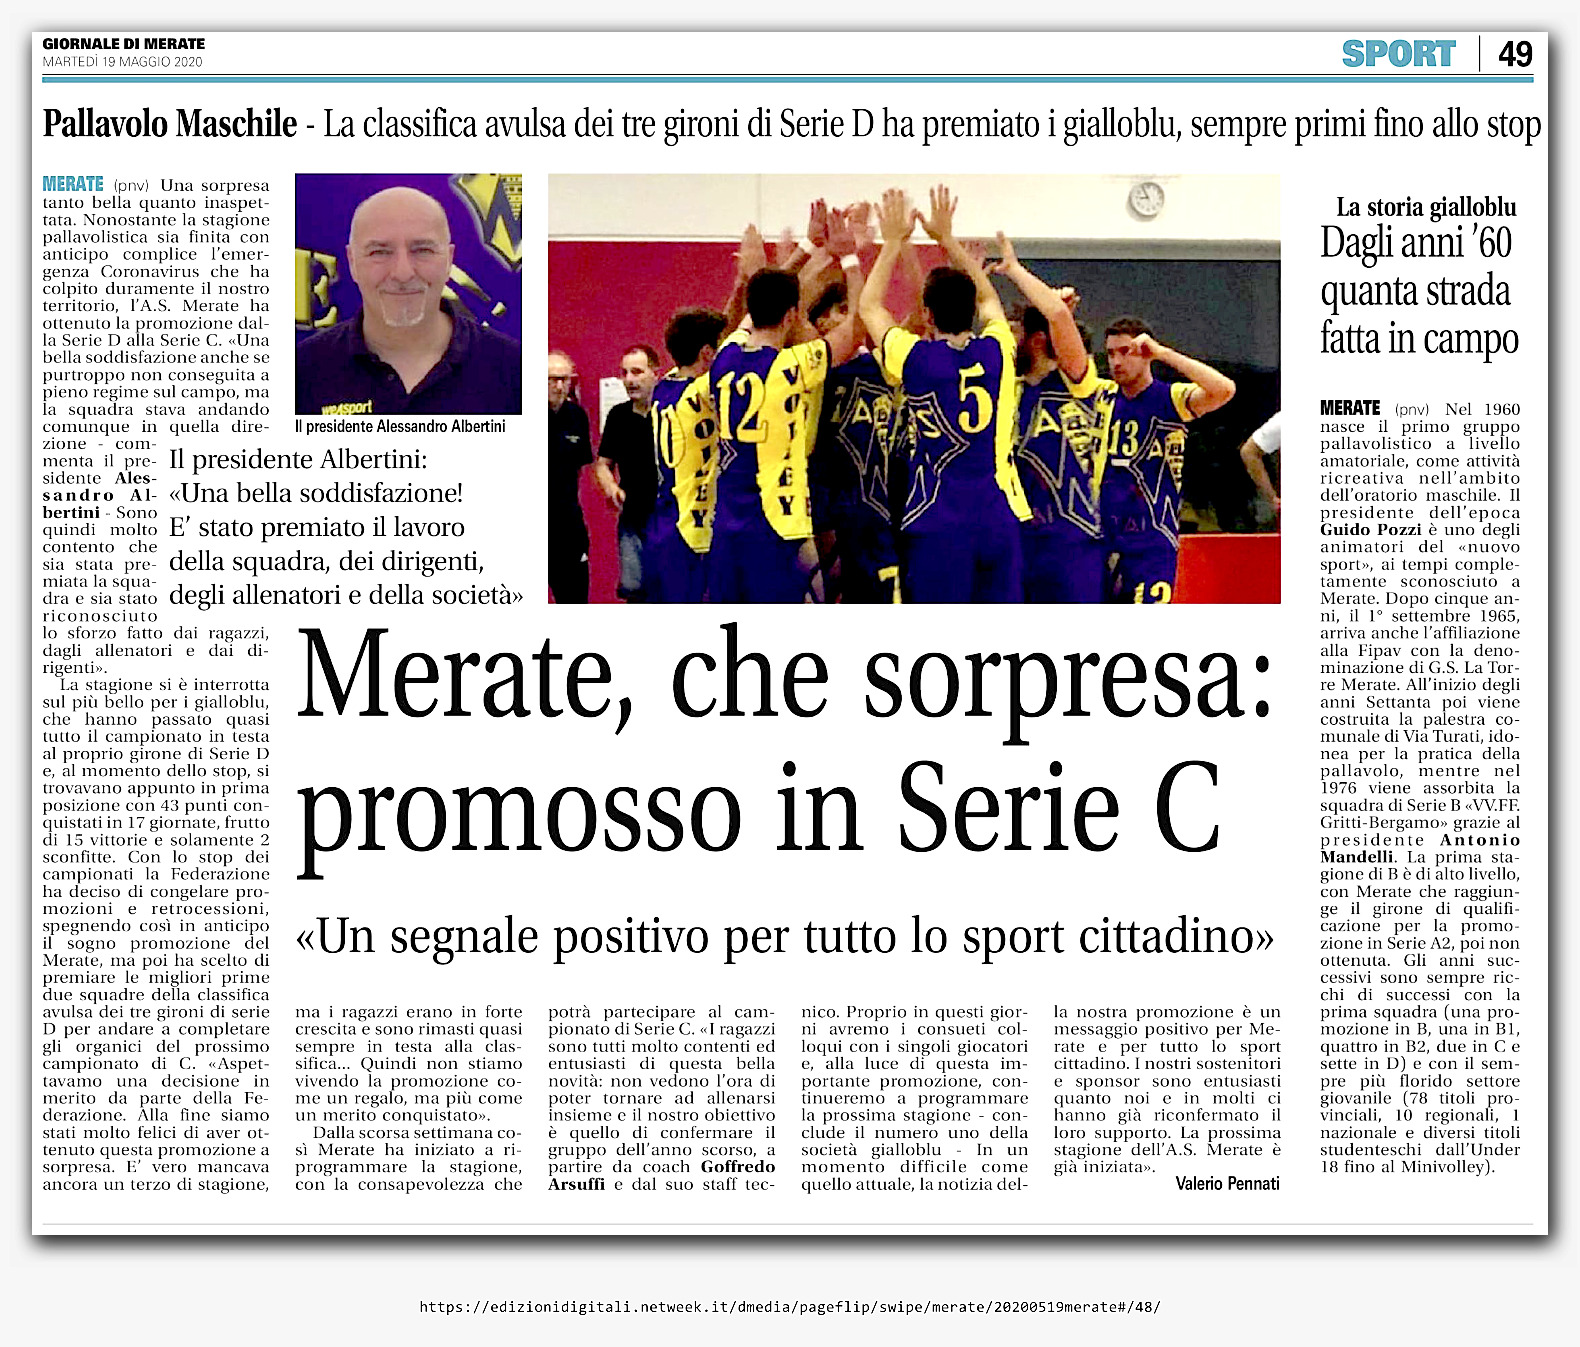 Merate promossa in Serie C !